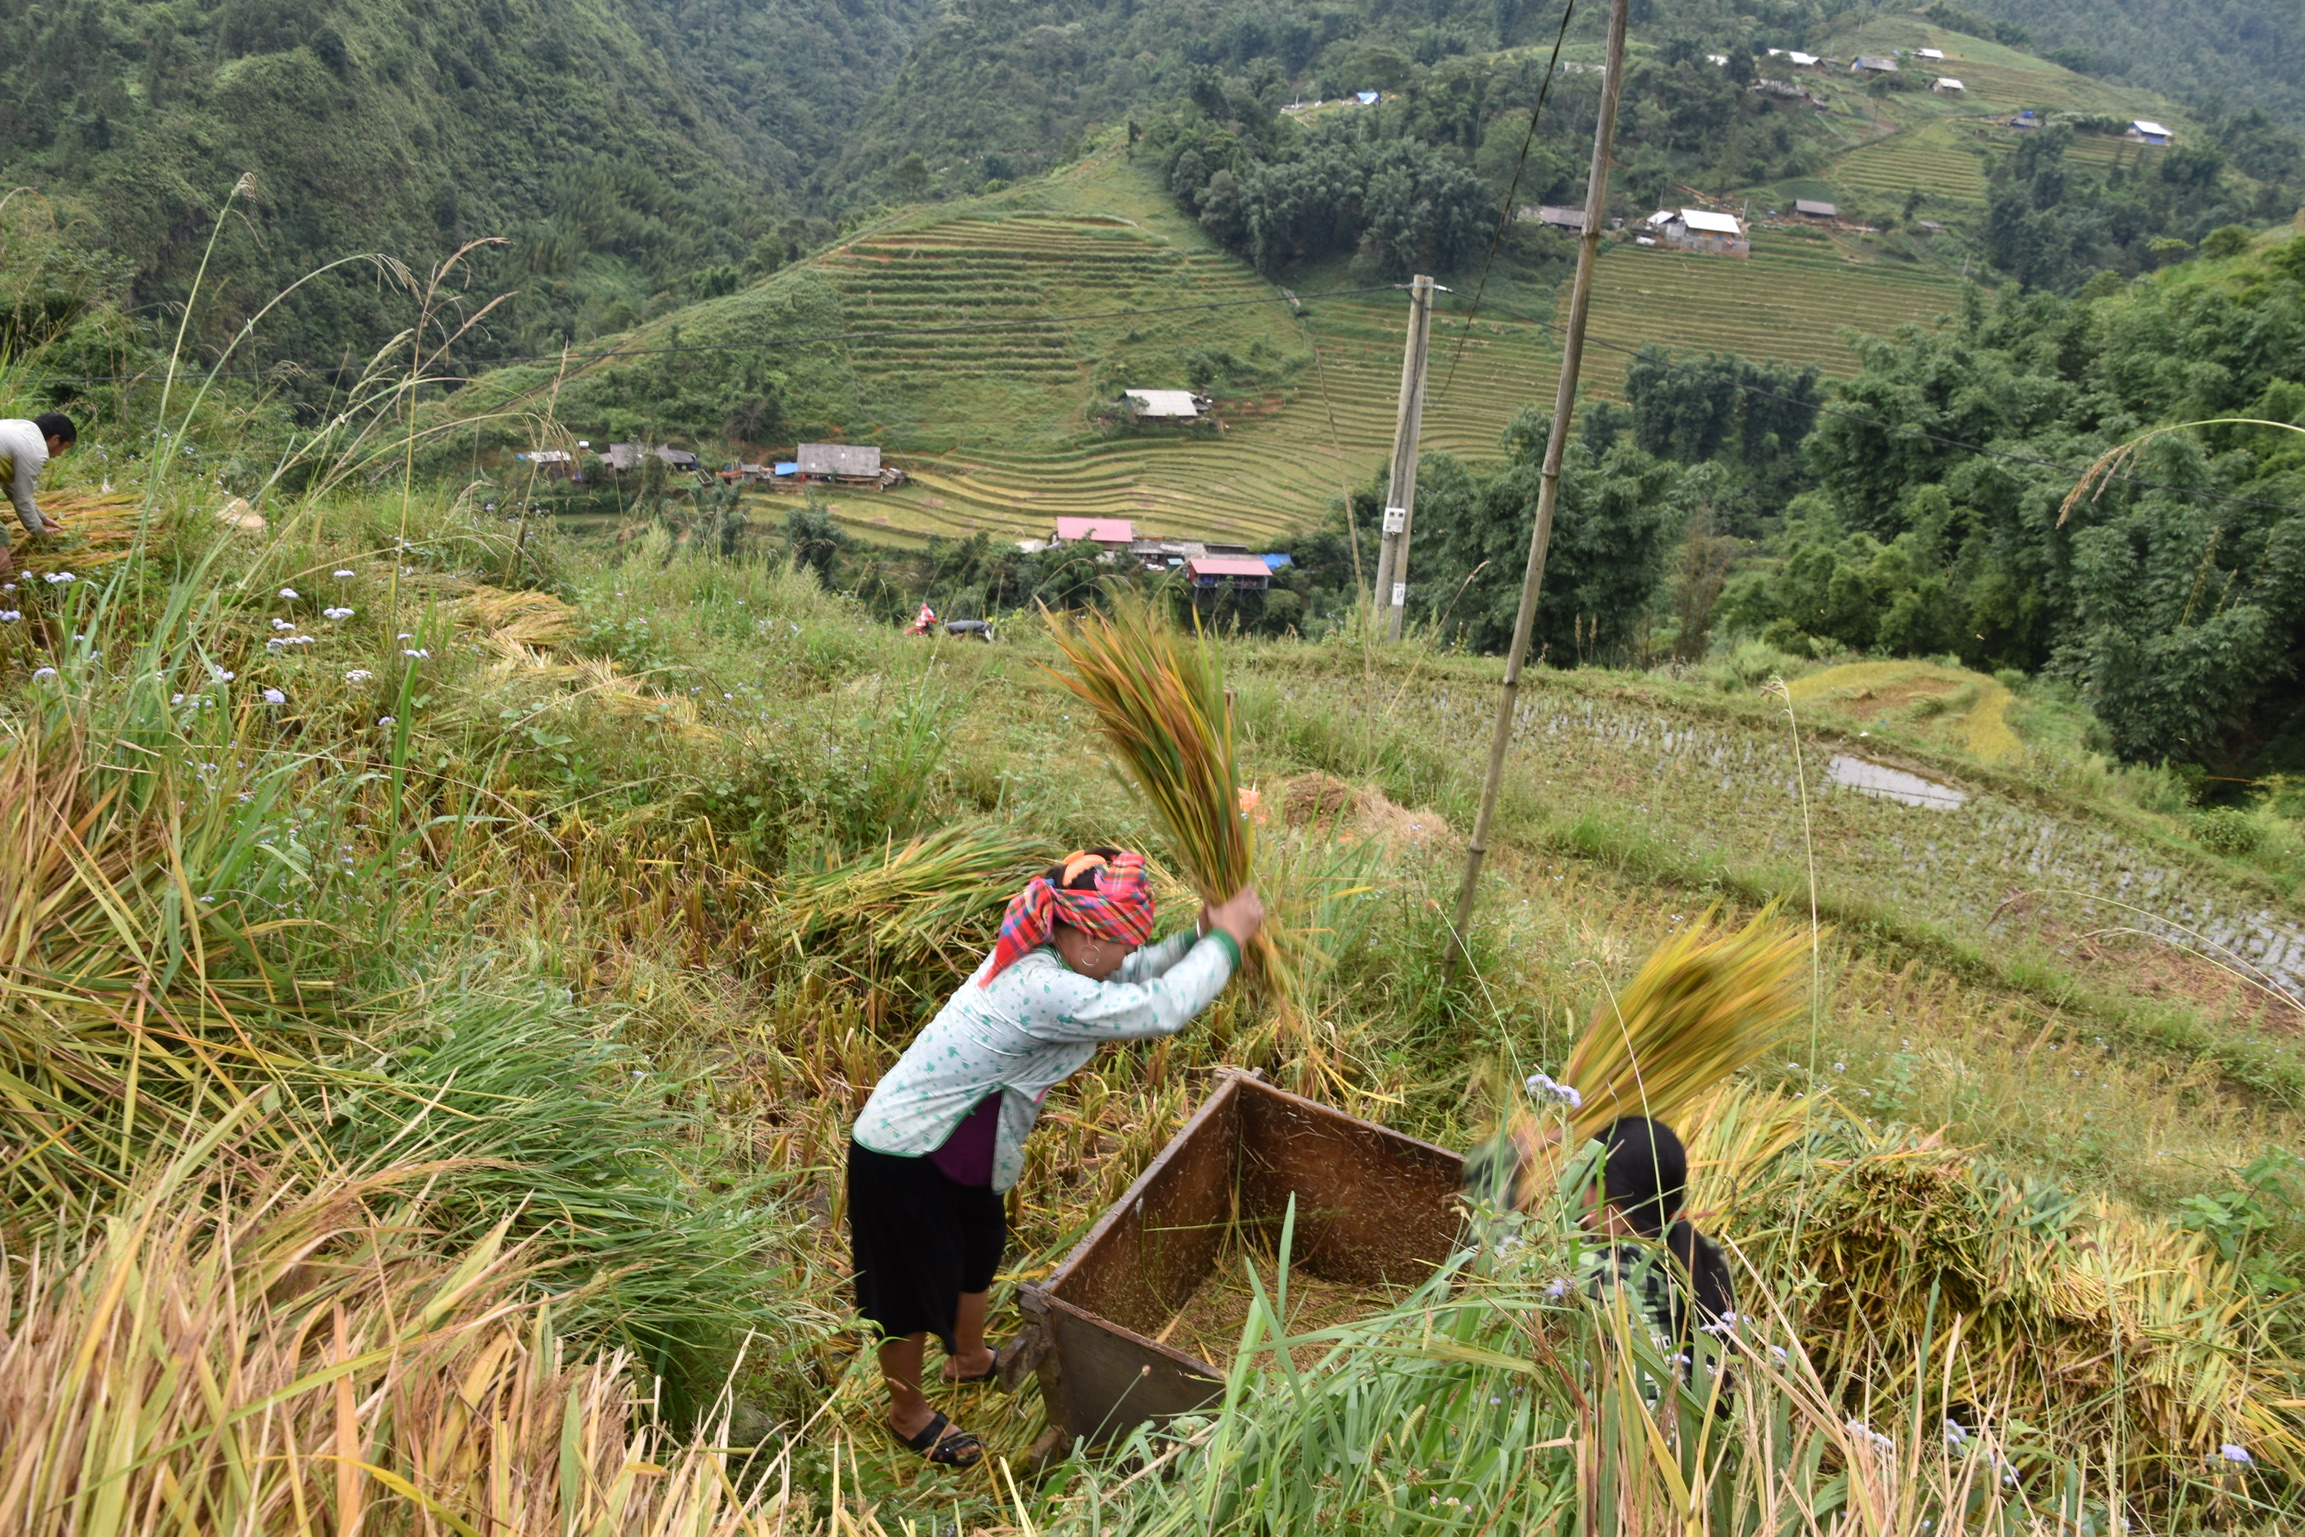 Sa Pa valley rice farmer harvesting rice